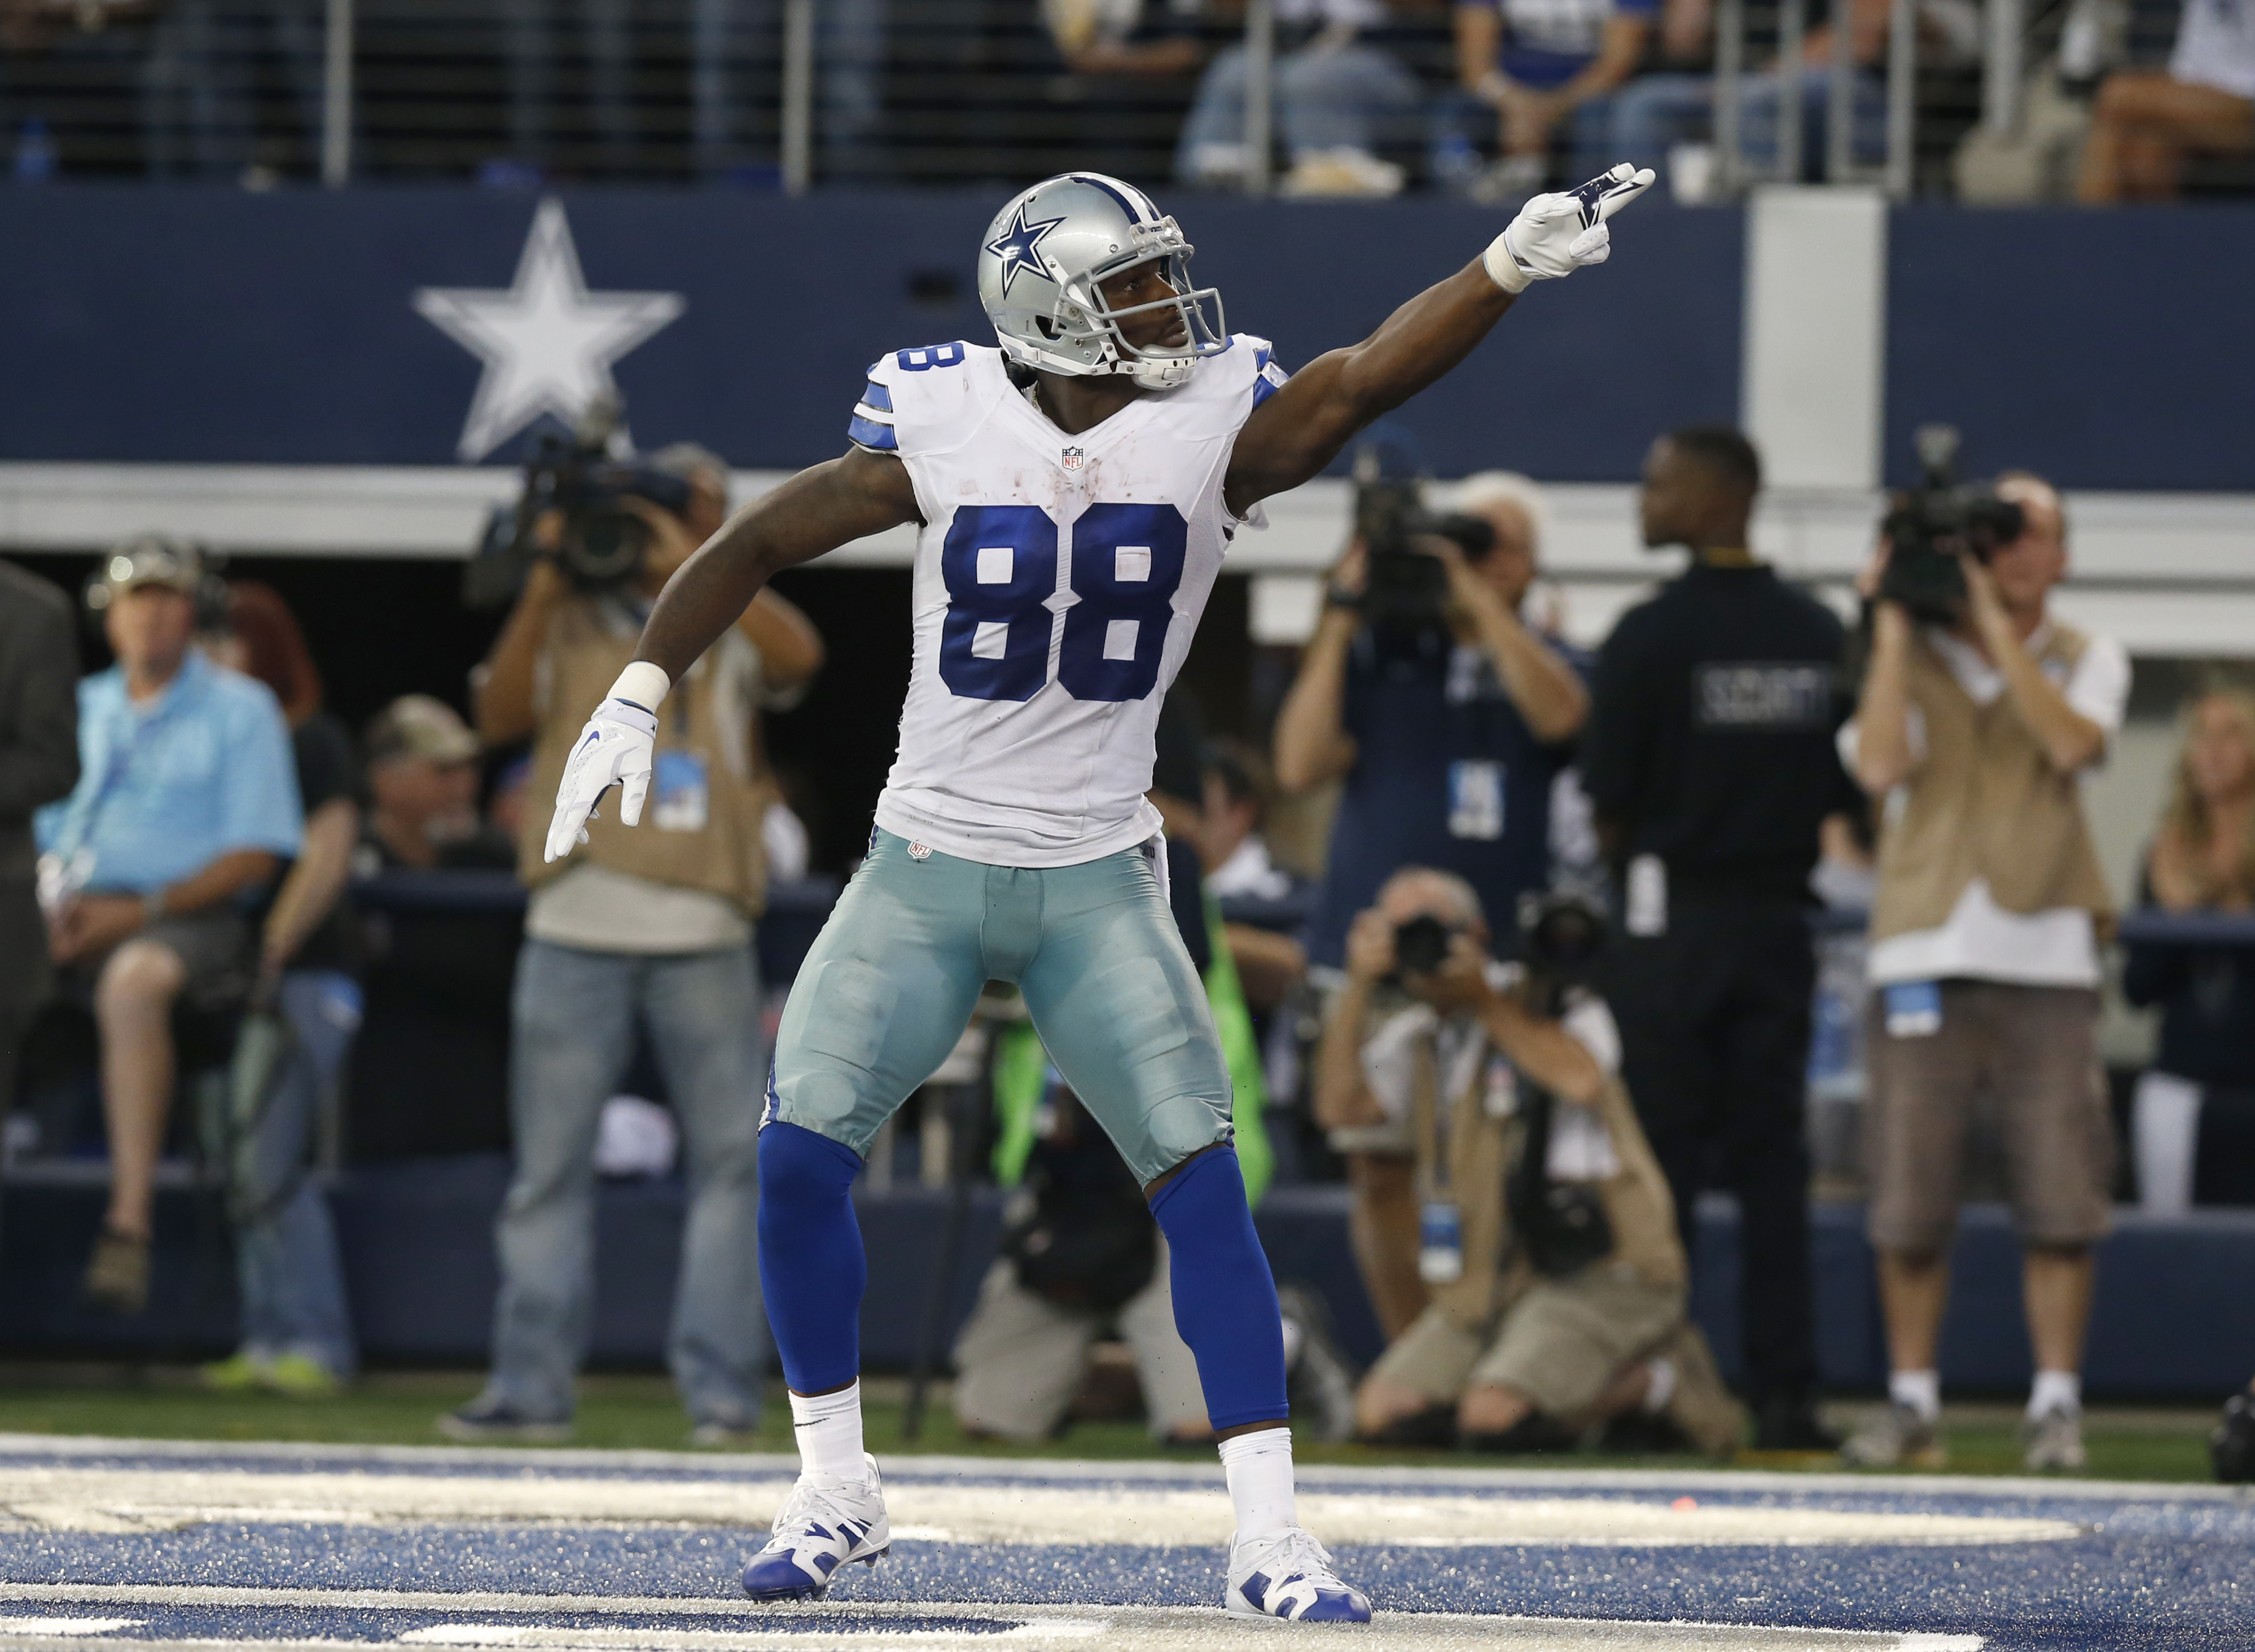 No Deal No Dez Bryant Tweets His Thoughts